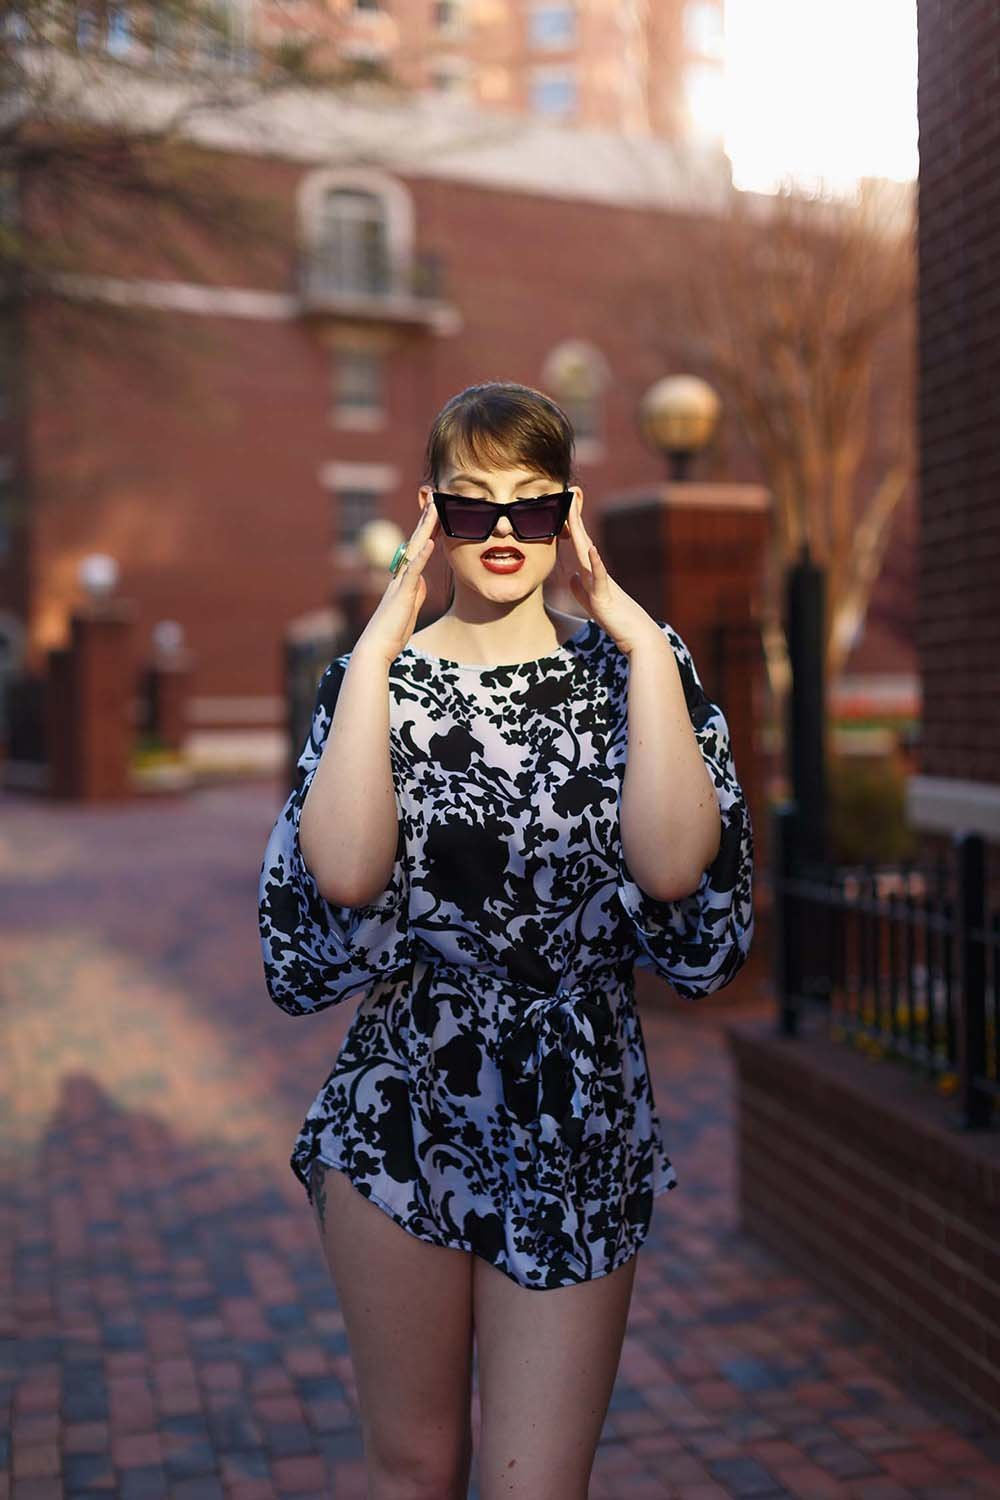 high-fashion-model-80ies-inspired-romper-statement-signature-pose-breaking-tradition-alexandria-virginia